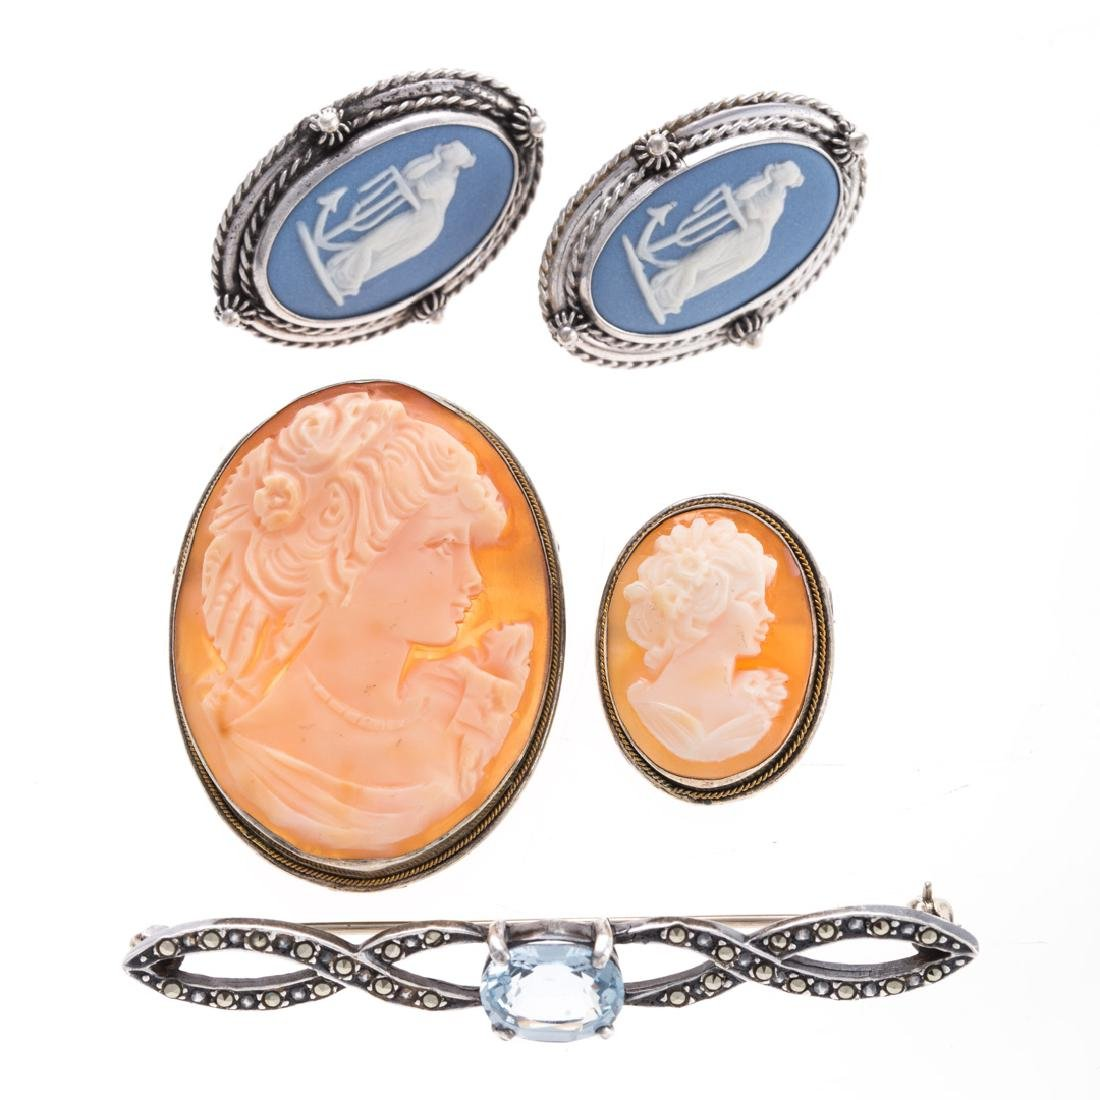 An Assortment of Silver Cameo Jewelry